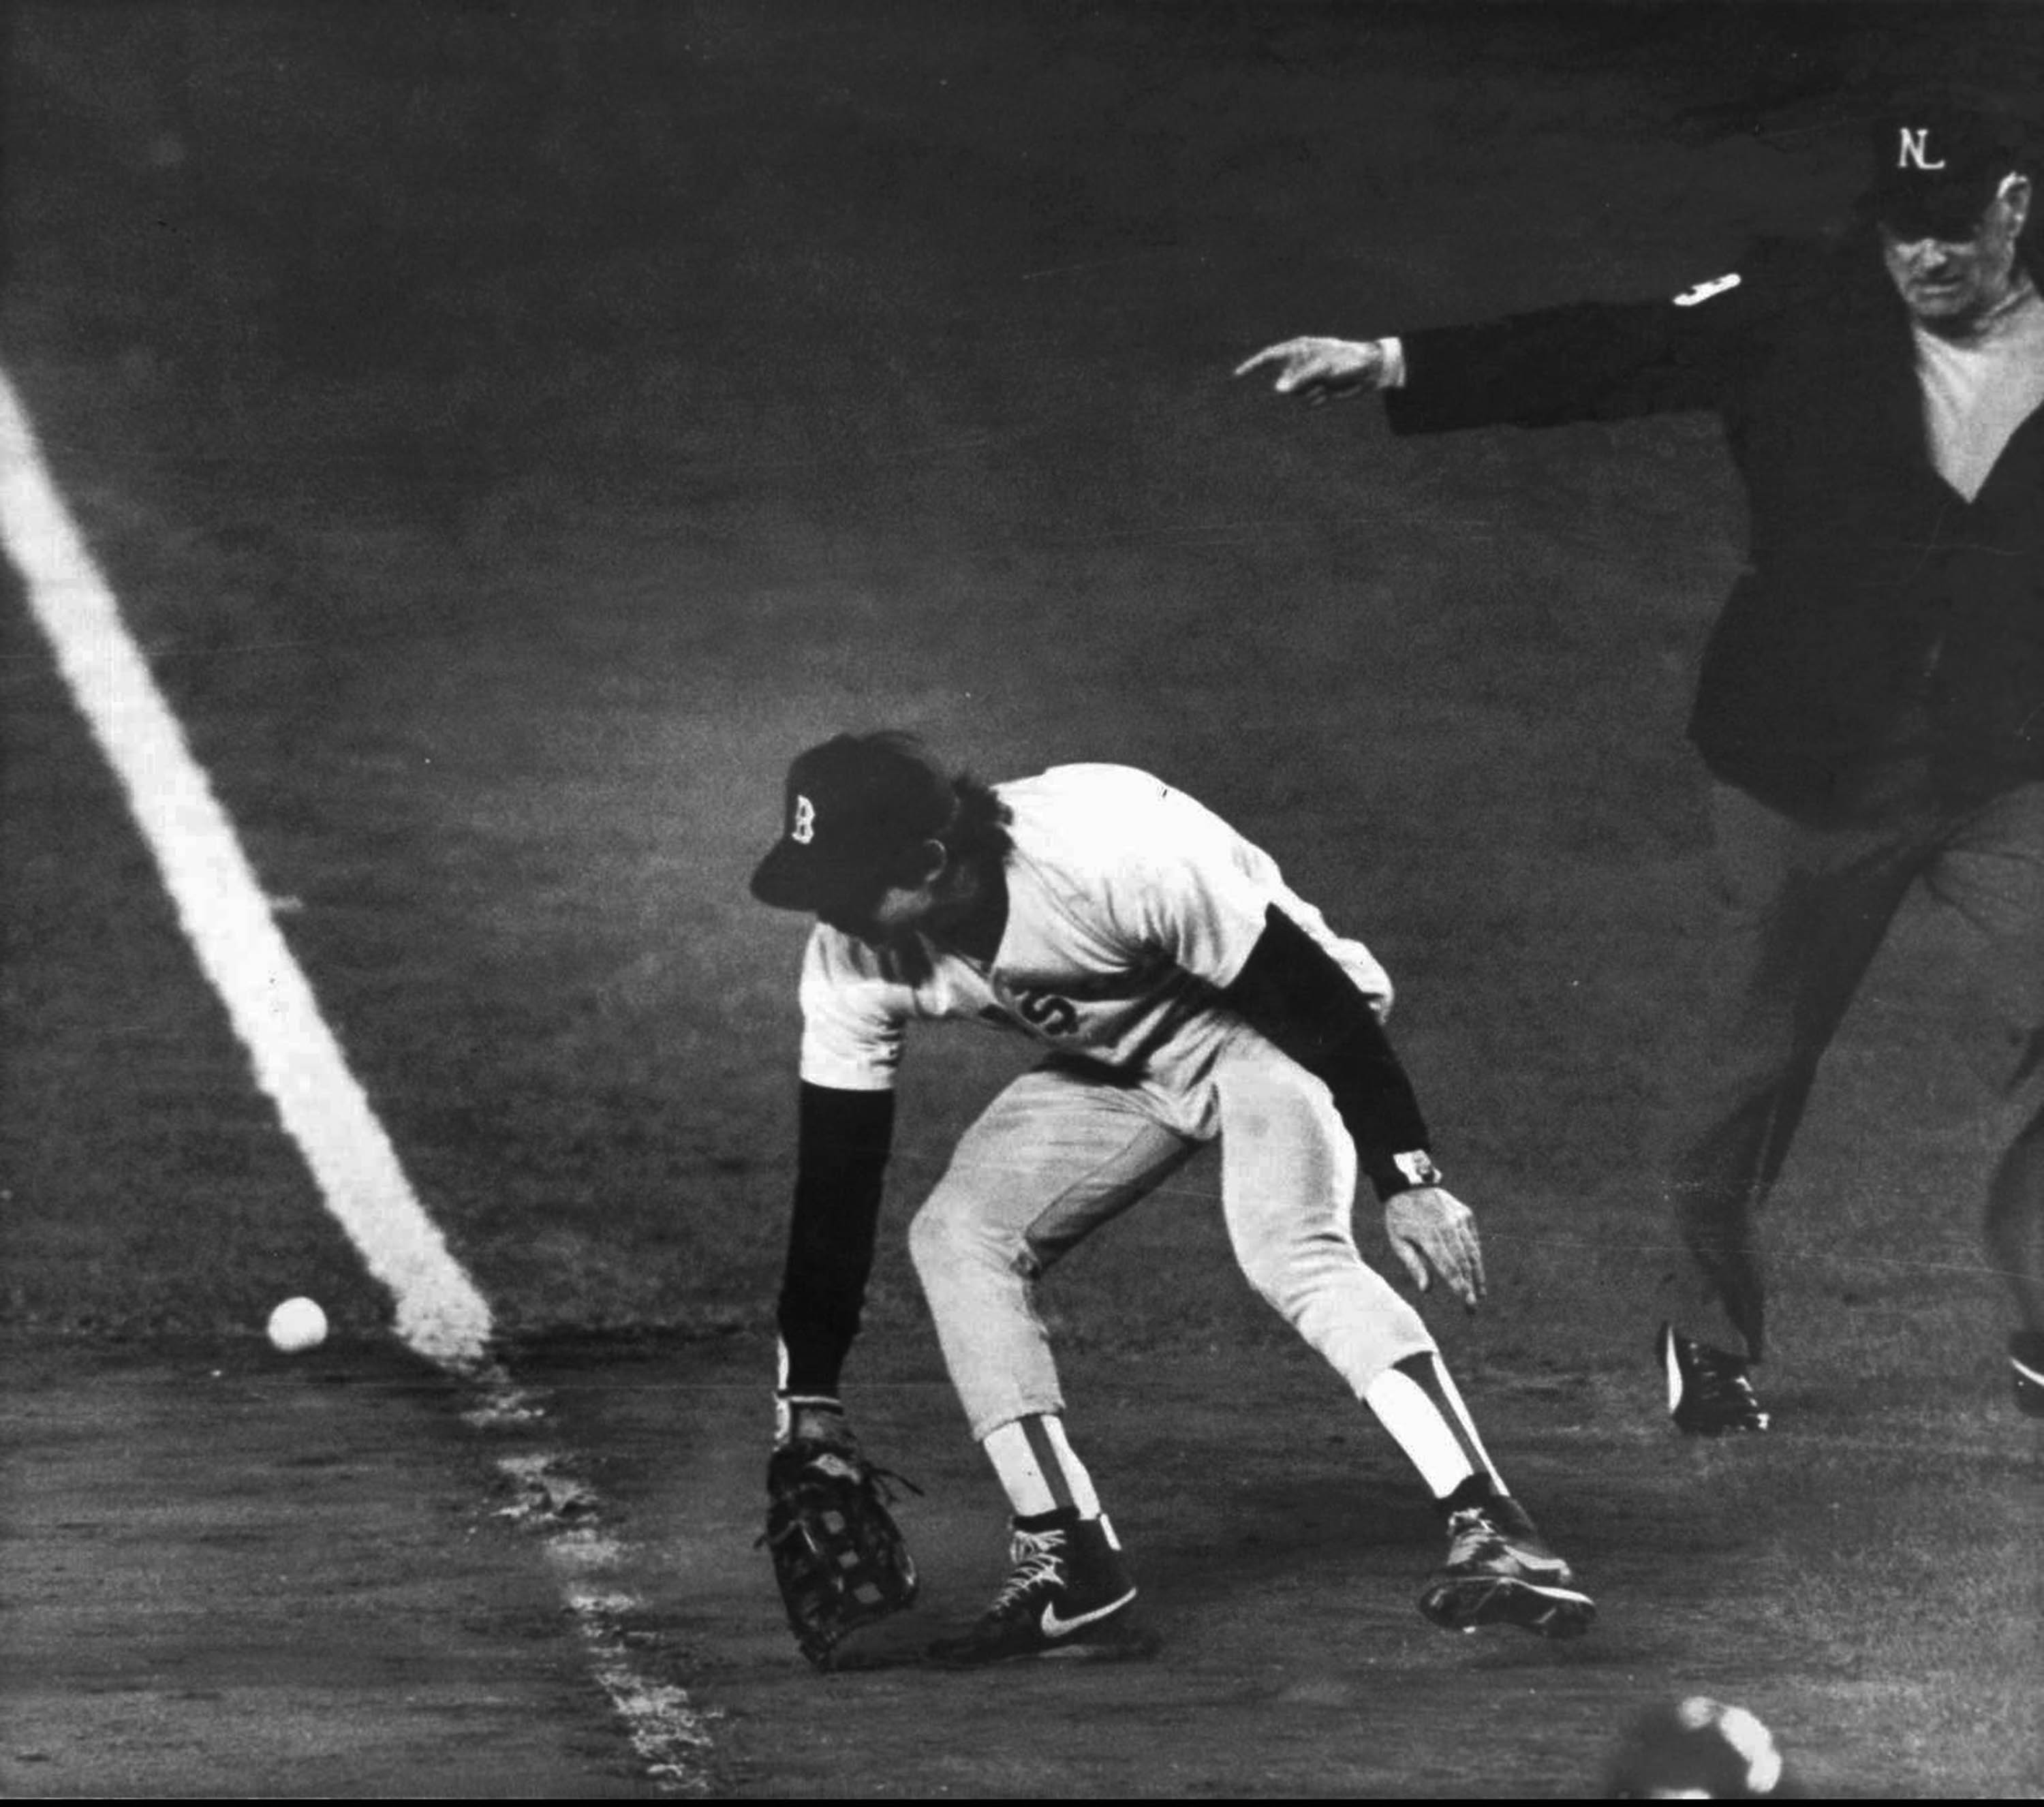 Oct. 25, 1986: Mookie Wilson of the New York Mets, at bat against  the Red Sox, who are one out away from winning the World Series.  Wilson hits a ground ball towards first base, which leads Red Sox first baseman Bill Buckner to commit an error that lets the ball go through his glove, allowing the Met's Ray Knight to score the game-winning run.  The Mets would go on to win the World Series.